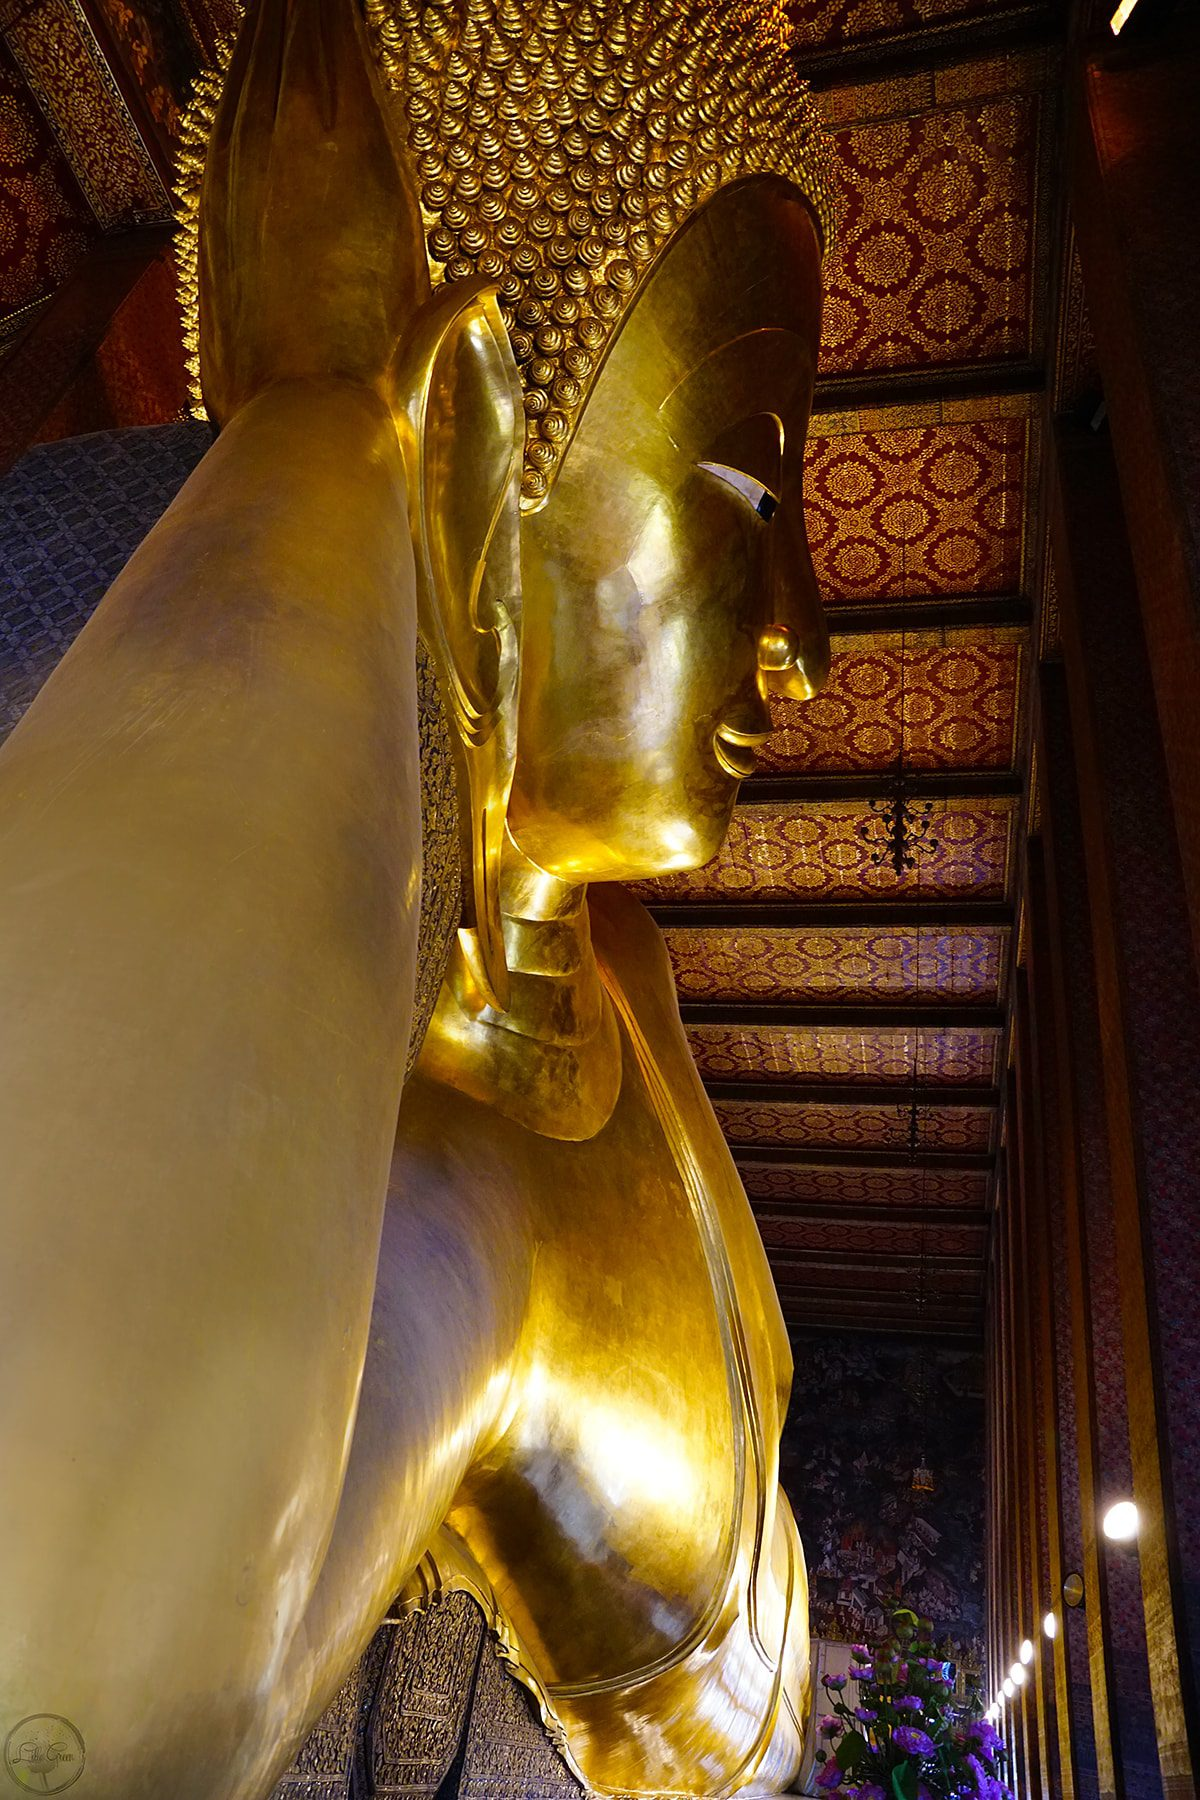 The Reclining Buddha, Wat Pho